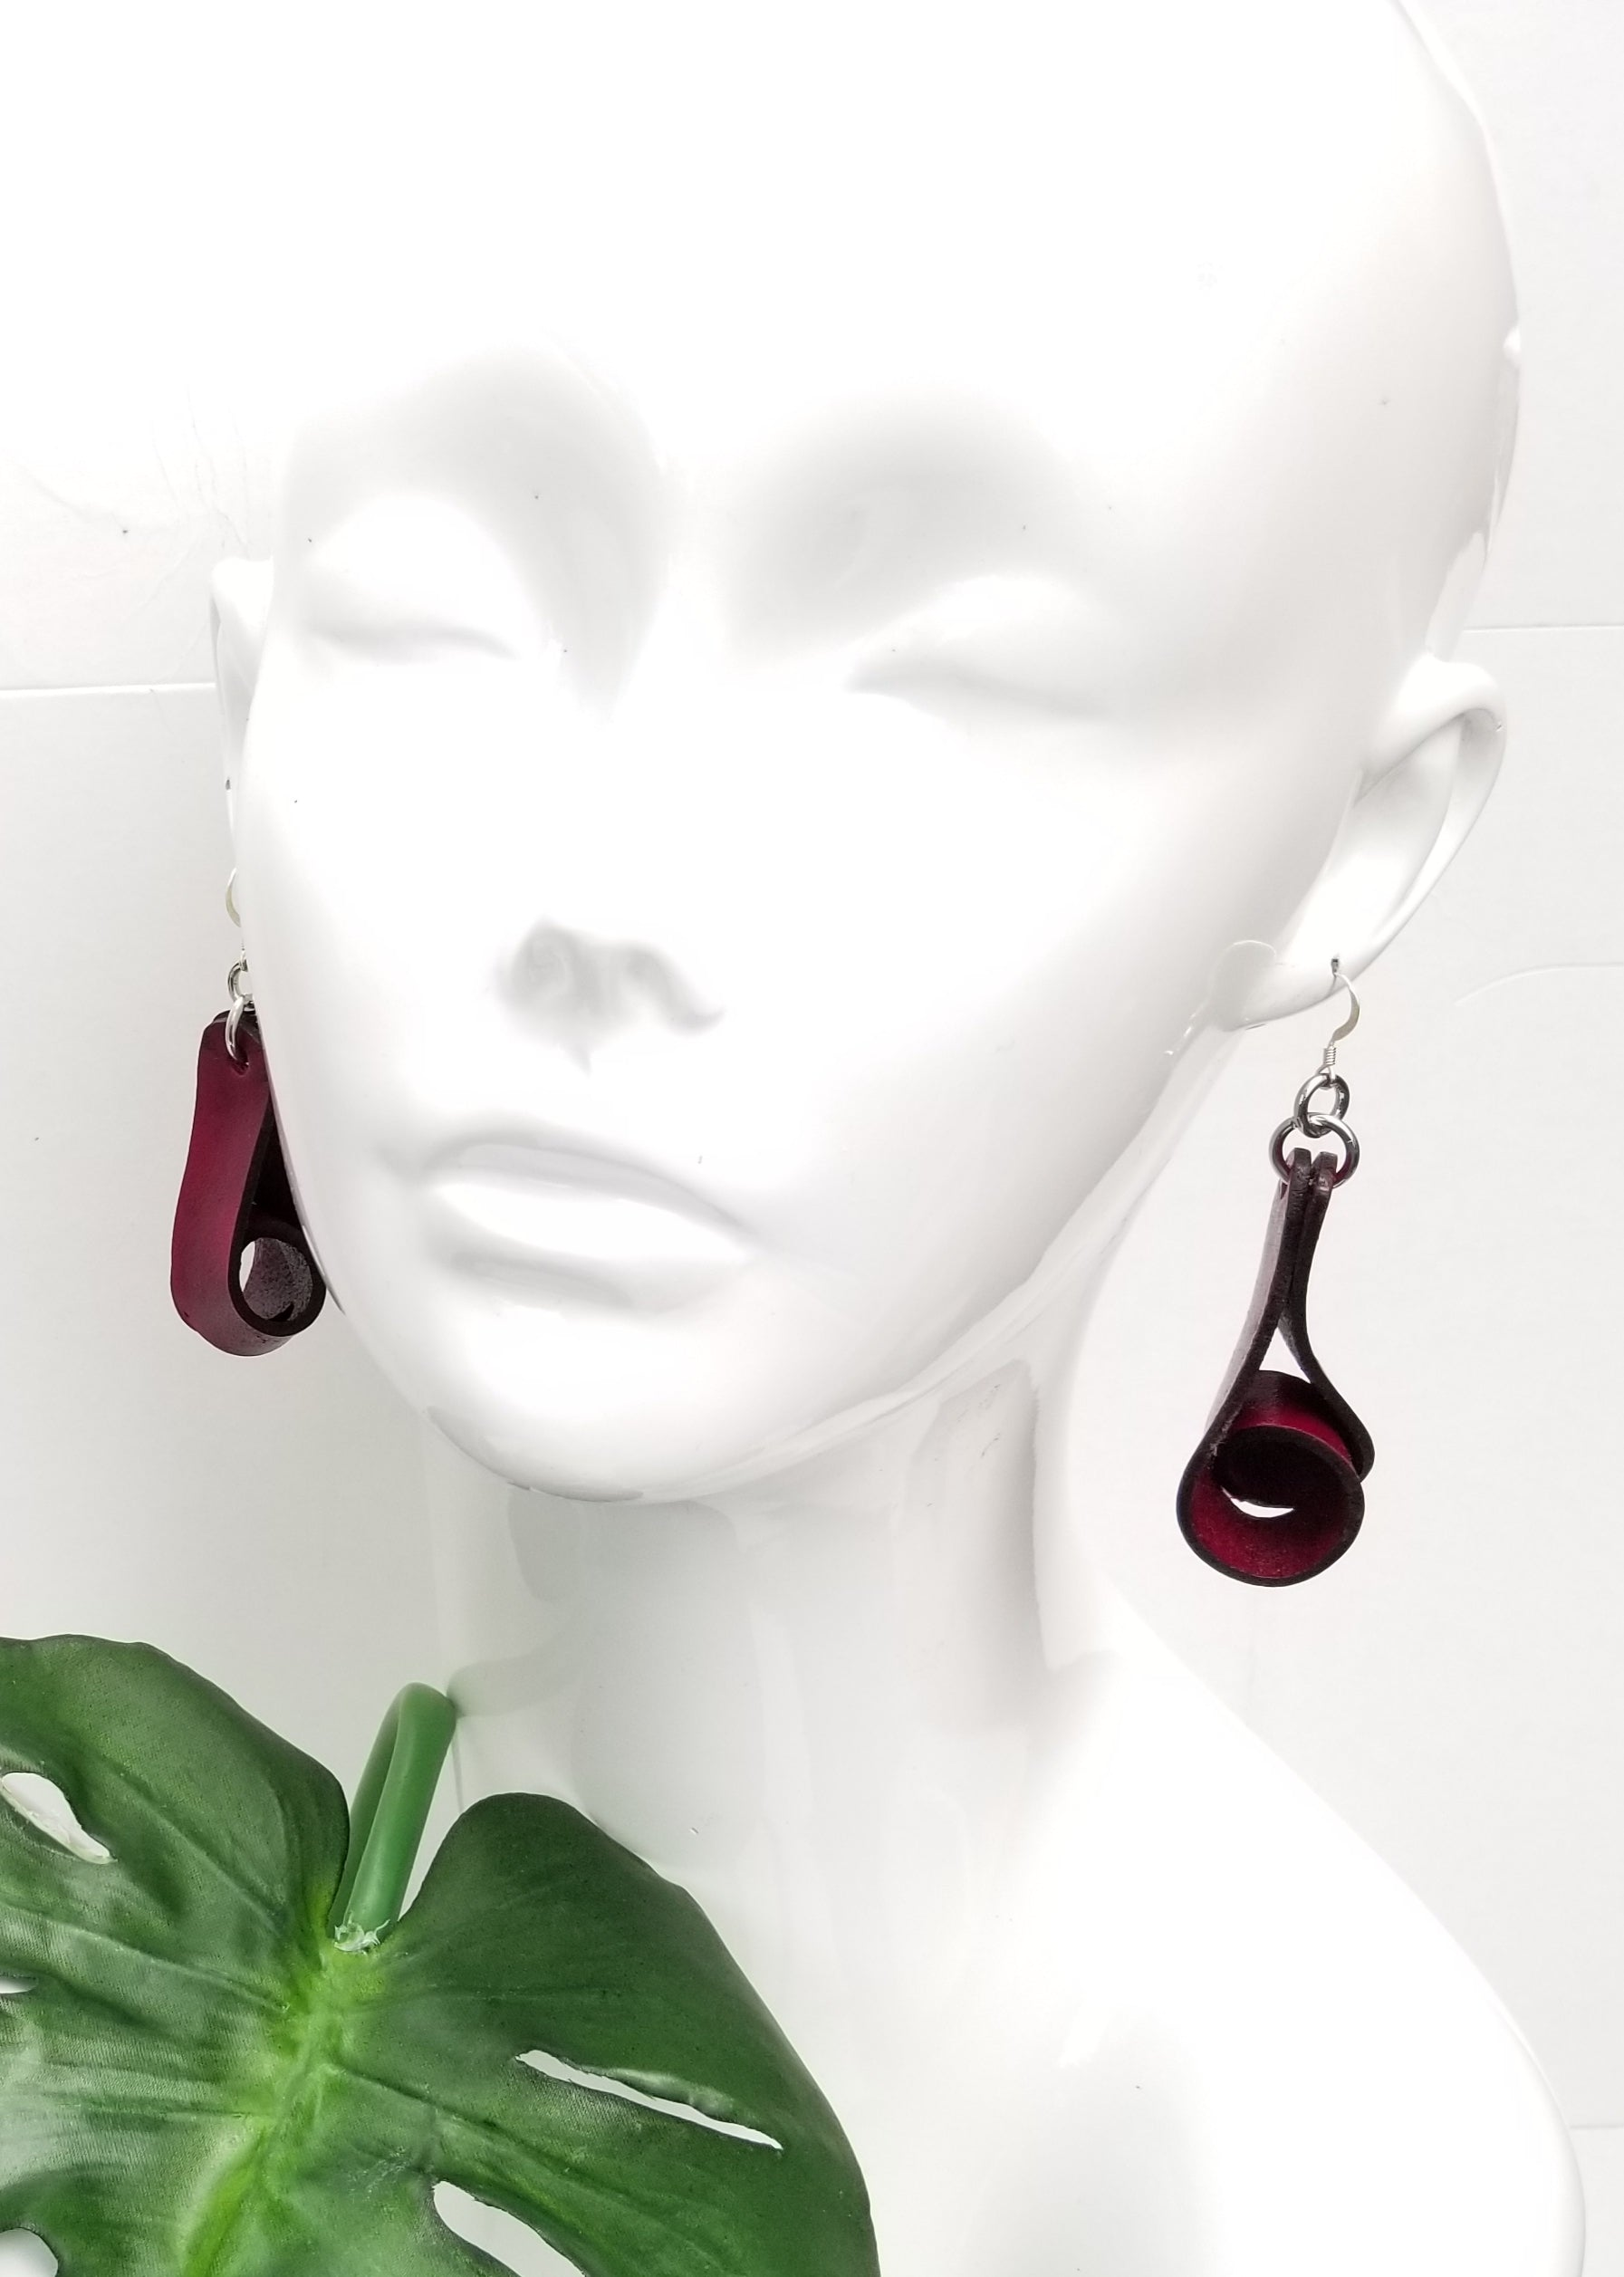 The Carla Medium Leather Earrings - Merlot (Hand Dyed) - Amber Poitier Inc.